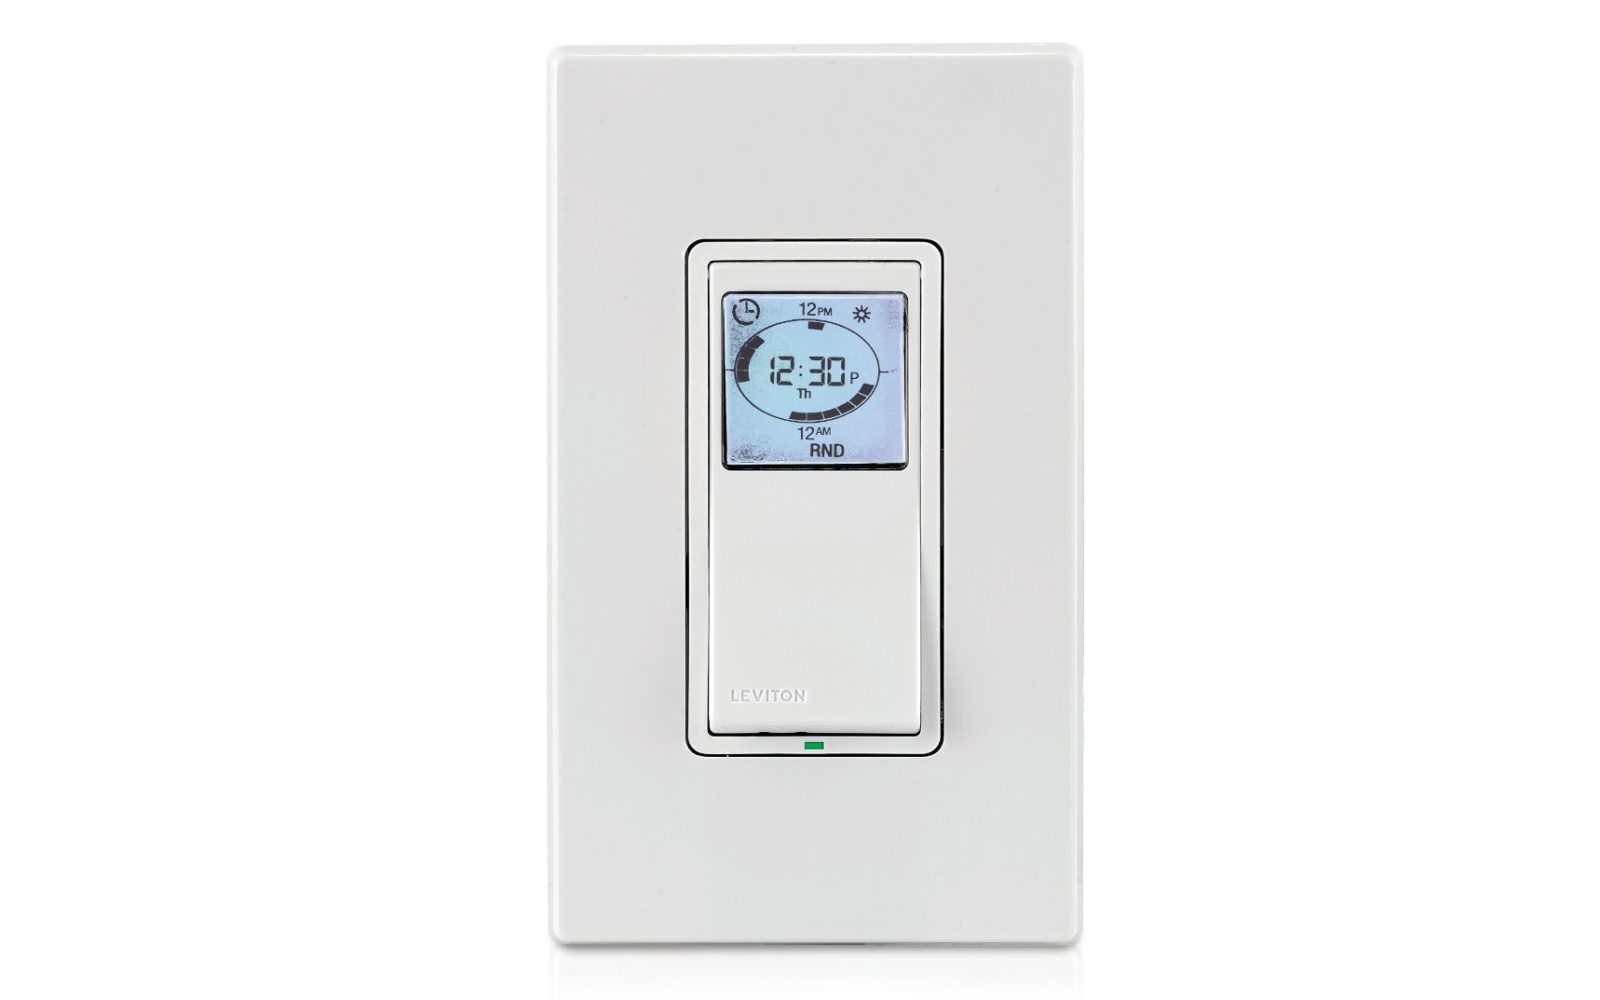 Green Deals: Leviton 24-hour Programmable Timer Switch w/ Display ...